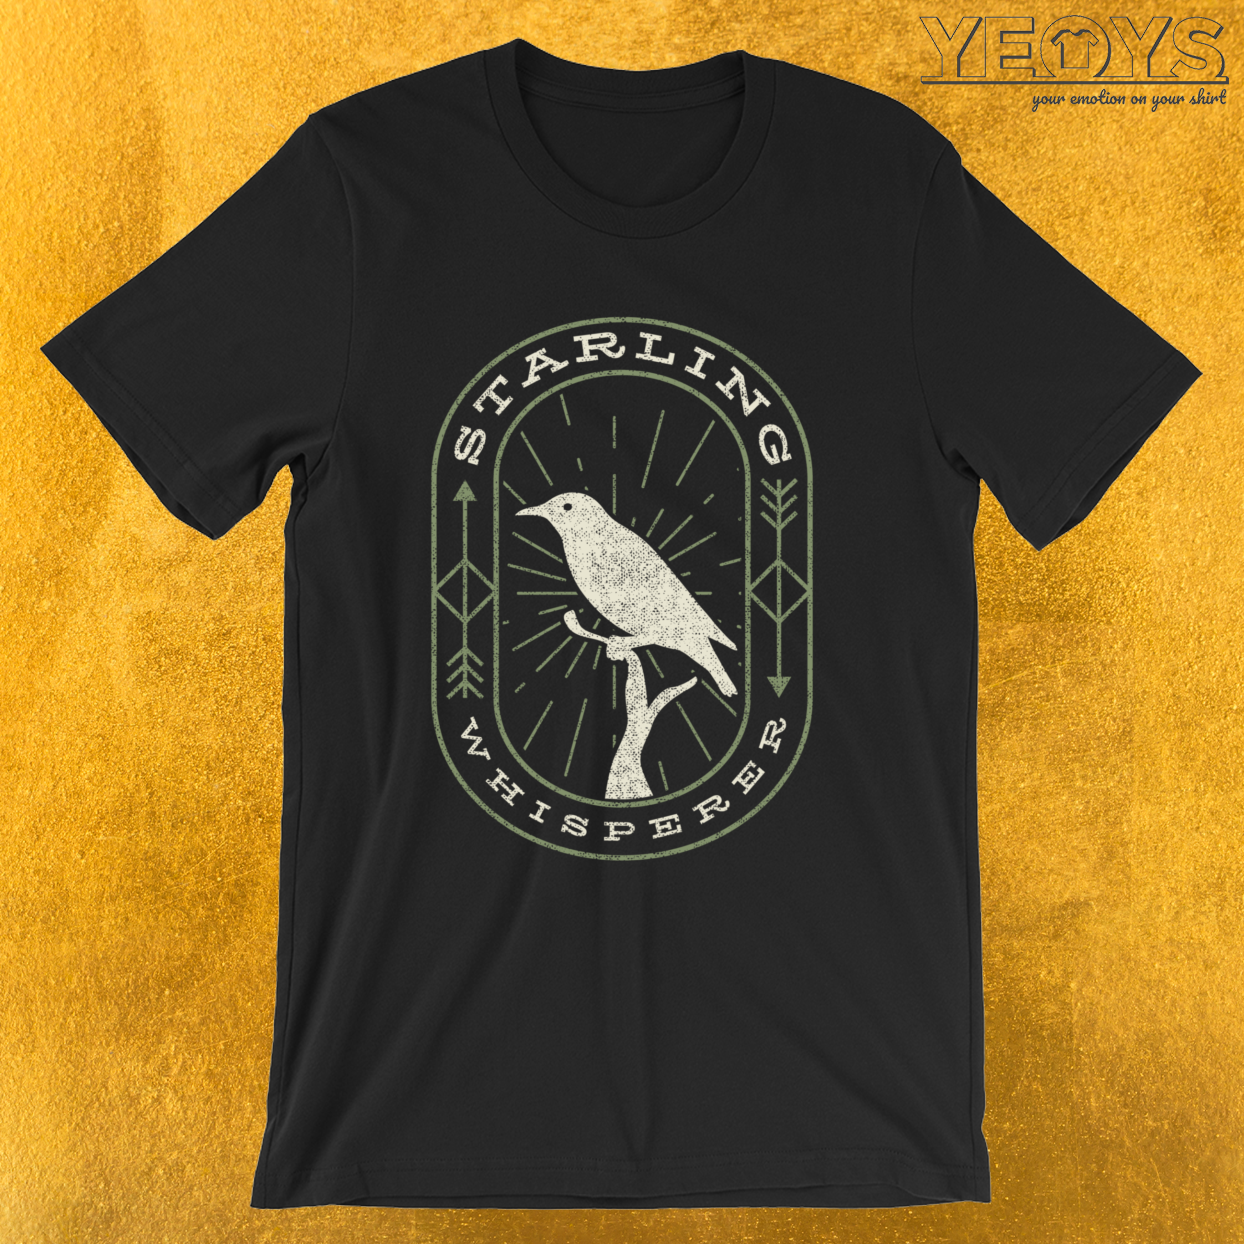 Starling Whisperer – Bird Watching Tee